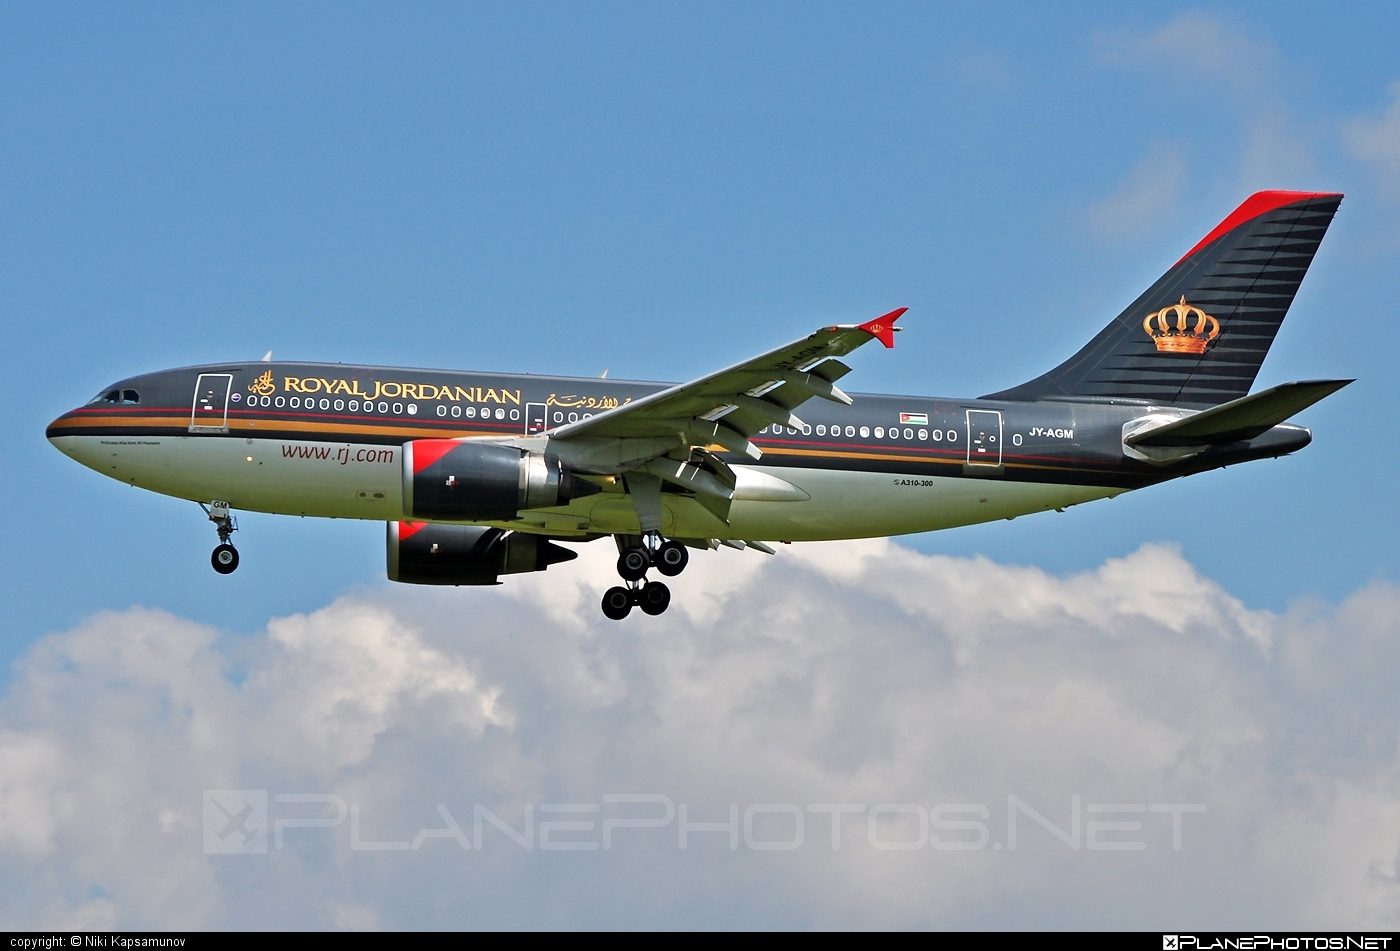 Airbus A310-304 - JY-AGM operated by Royal Jordanian #a310 #airbus